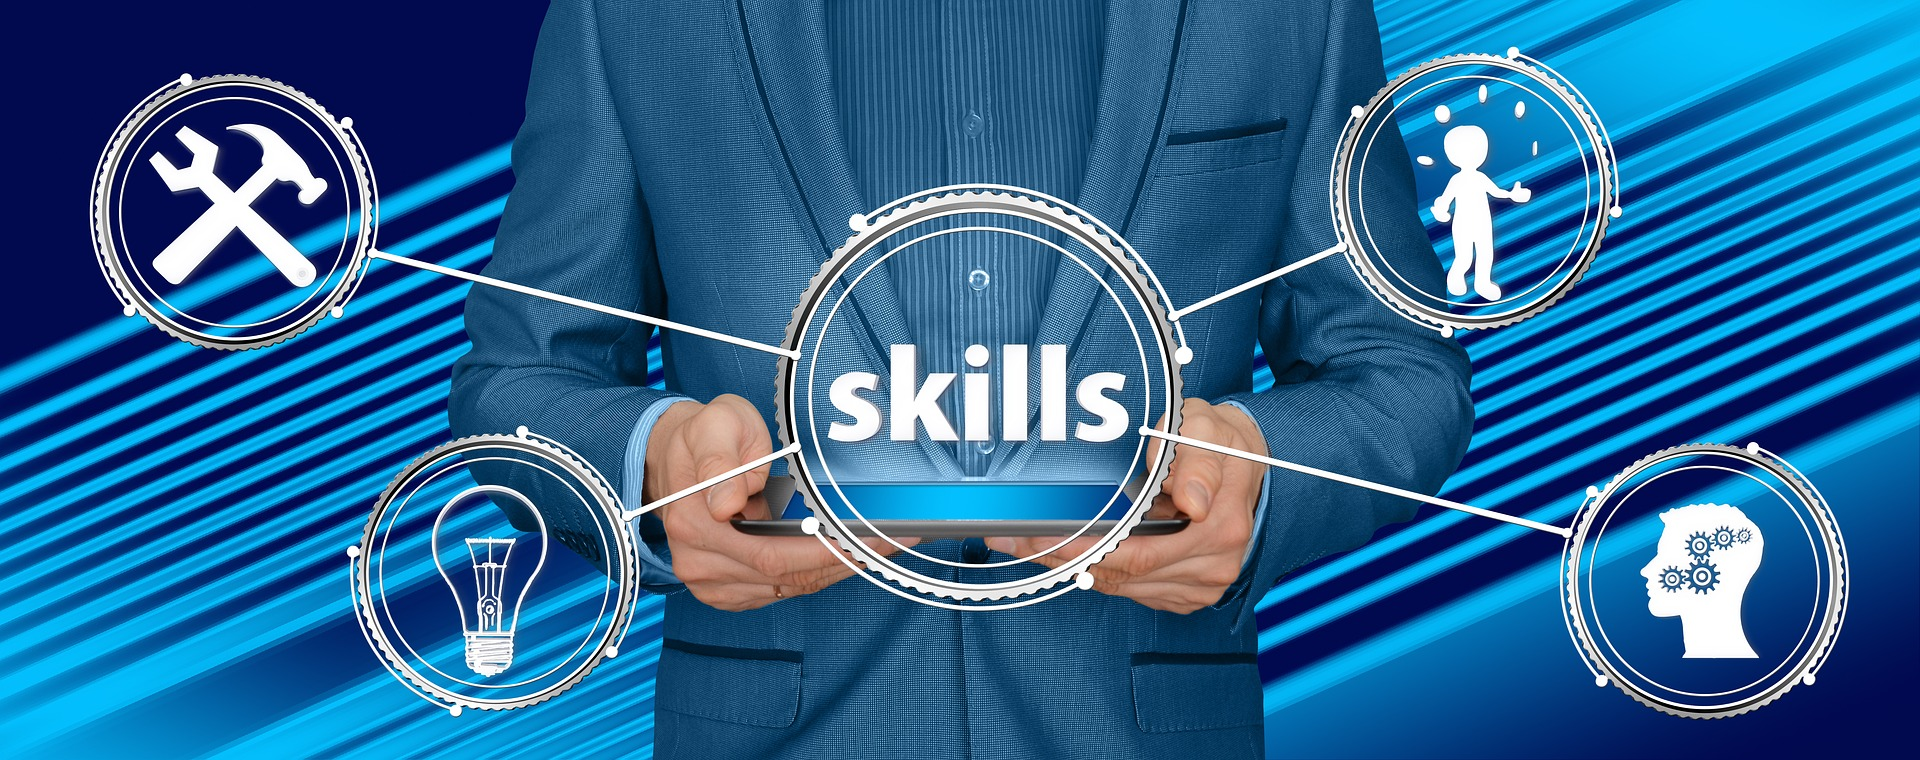 Matching skills to what employers are looking for is key to finding your dream job.